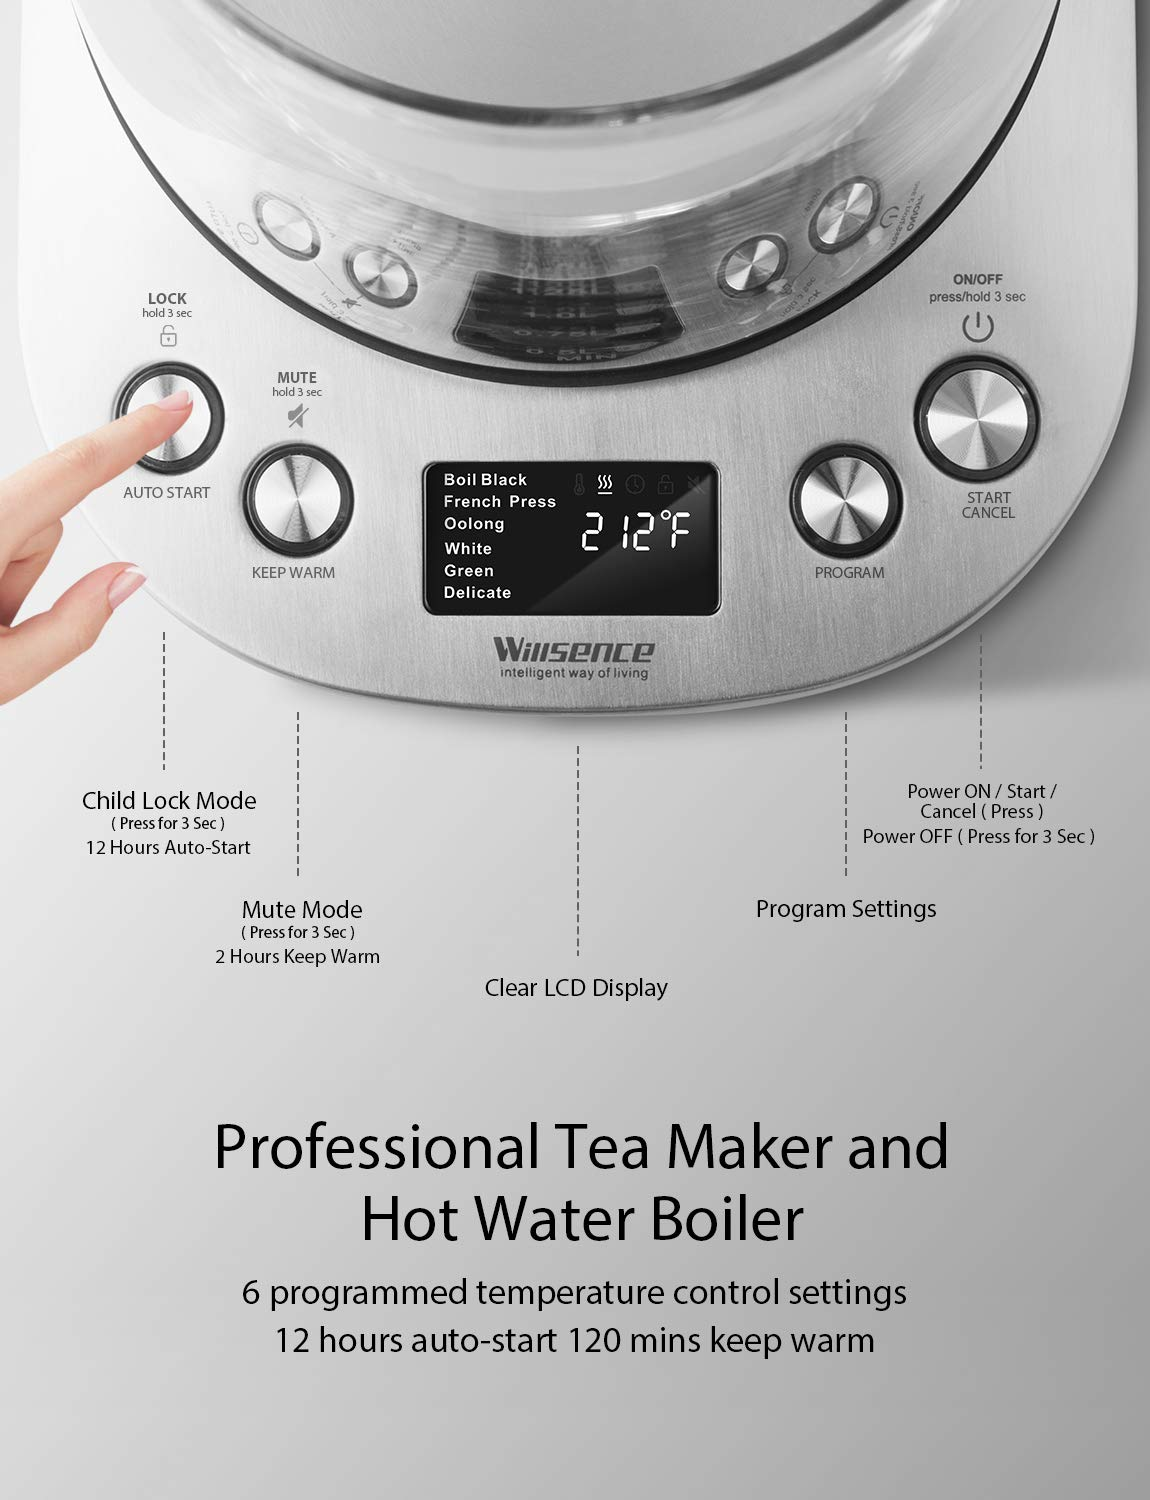 Willsence Electric Kettle, Electric Tea Kettle Stainless Steel Glass Boiler Hot Water Tea Heater with Temperature Control LCD Display, Removable Tea Infuser, 1.7 L, 1200W by Willsence (Image #3)